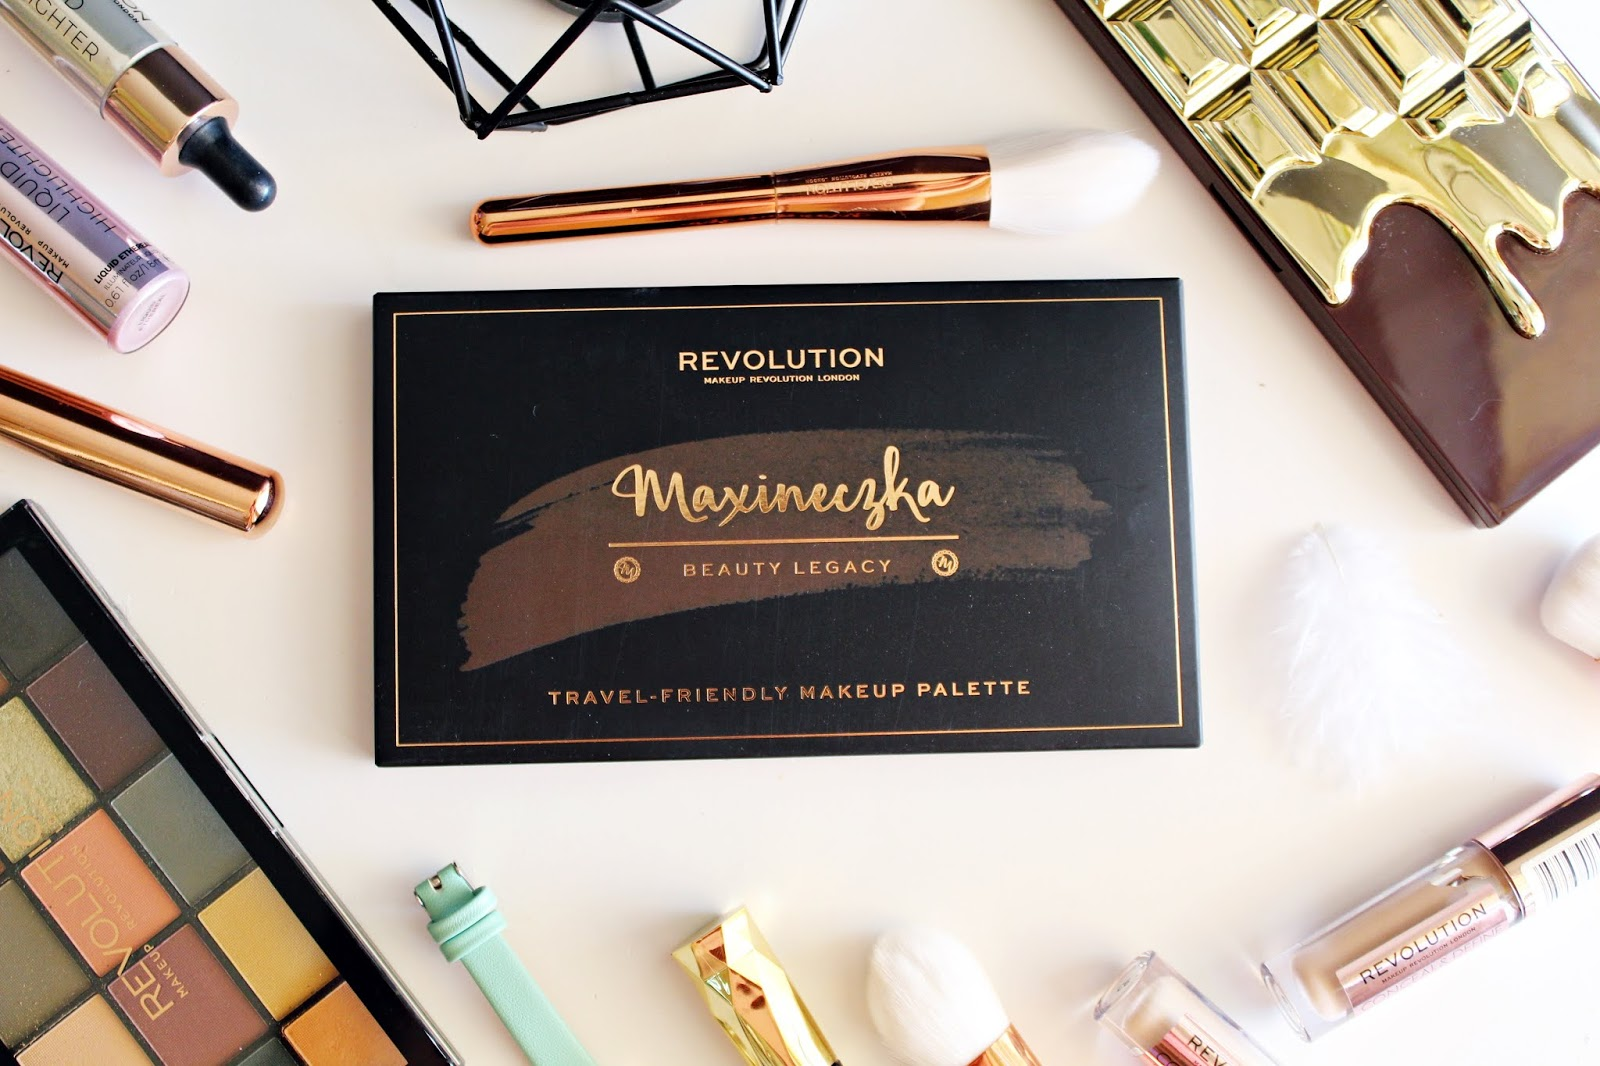 MAXINECZKA BEAUTY LEGACY Travel-Friendly makeup palette - Makeup Revolution